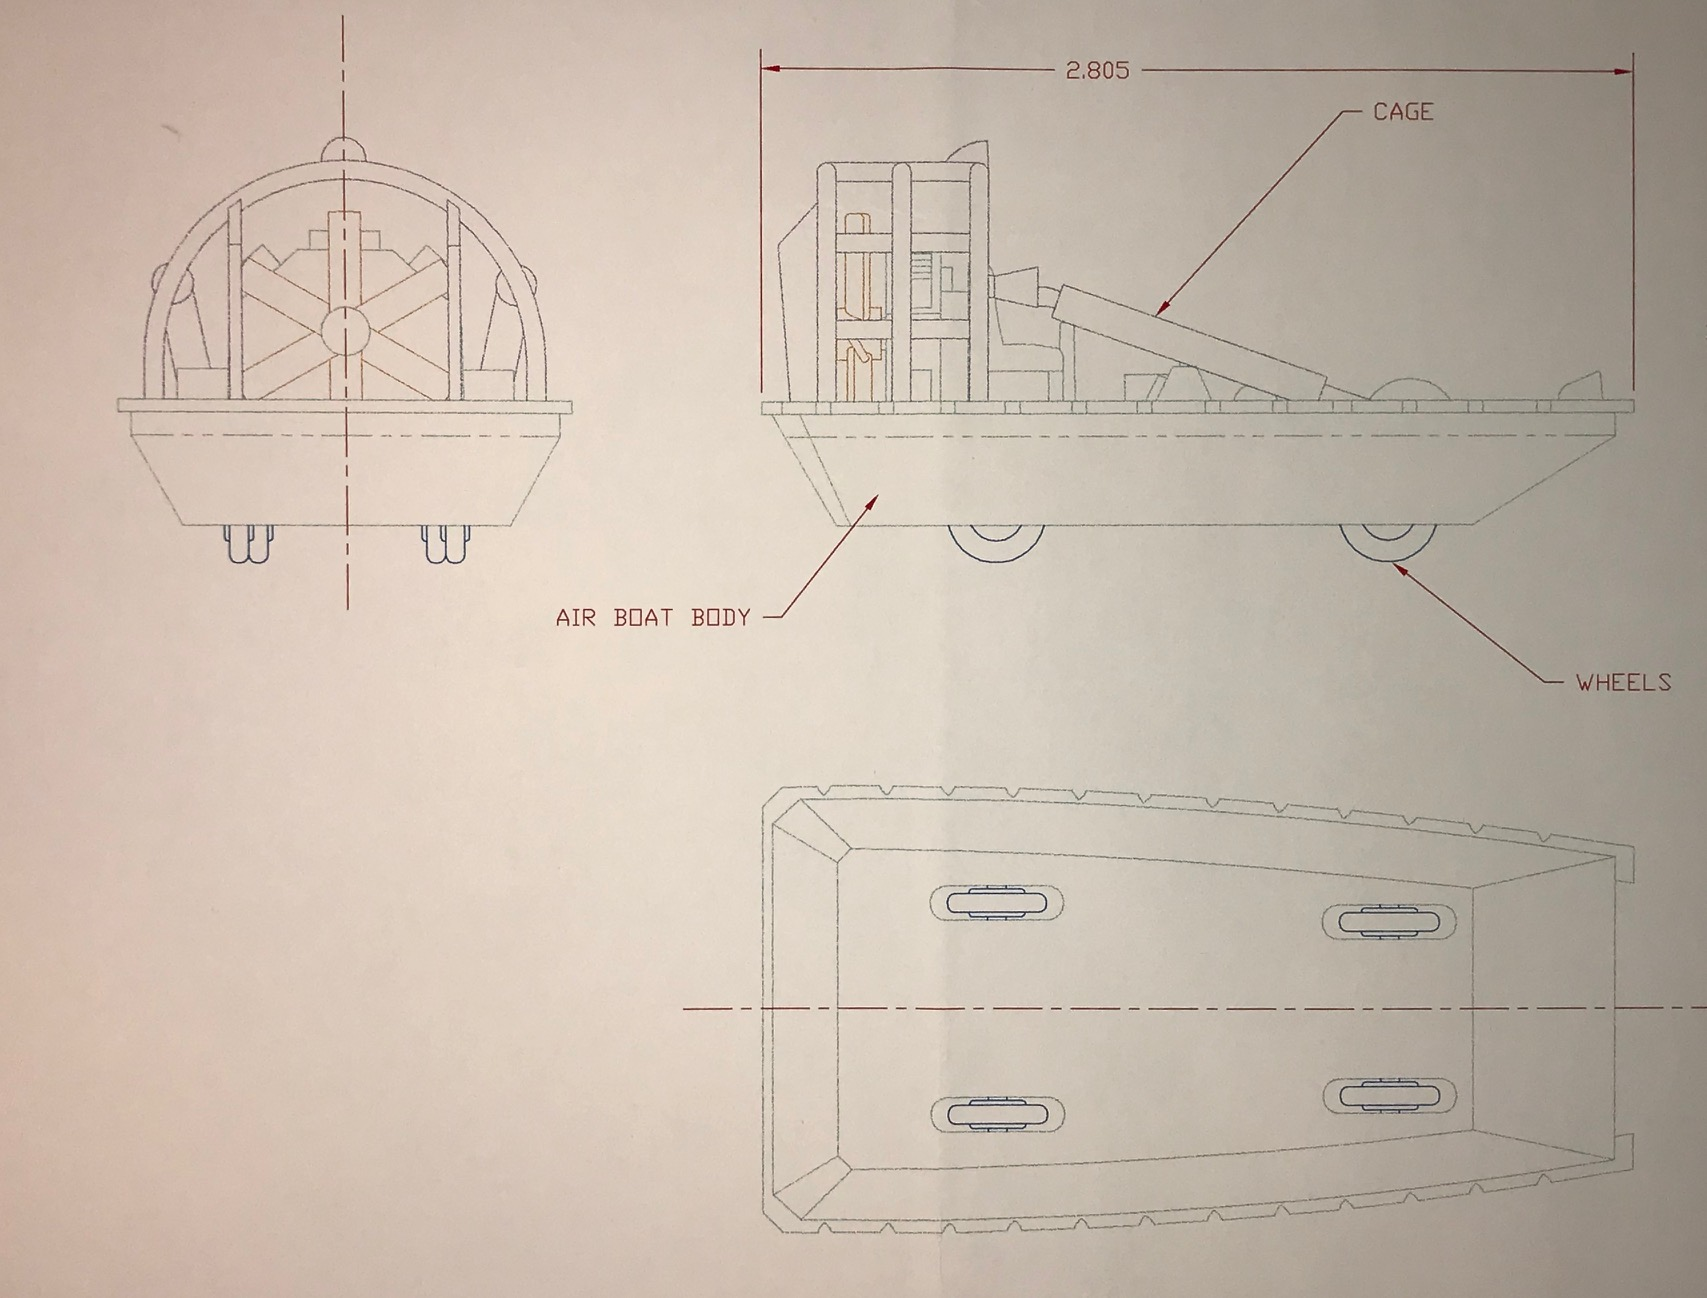 hight resolution of matchbox air boat control drawing